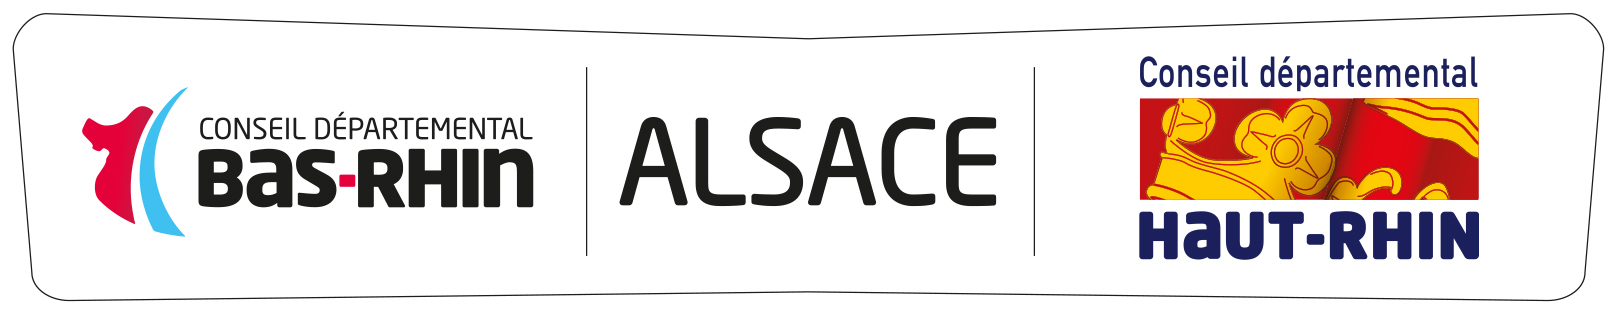 logo conjoint Alsace F100 Hdef